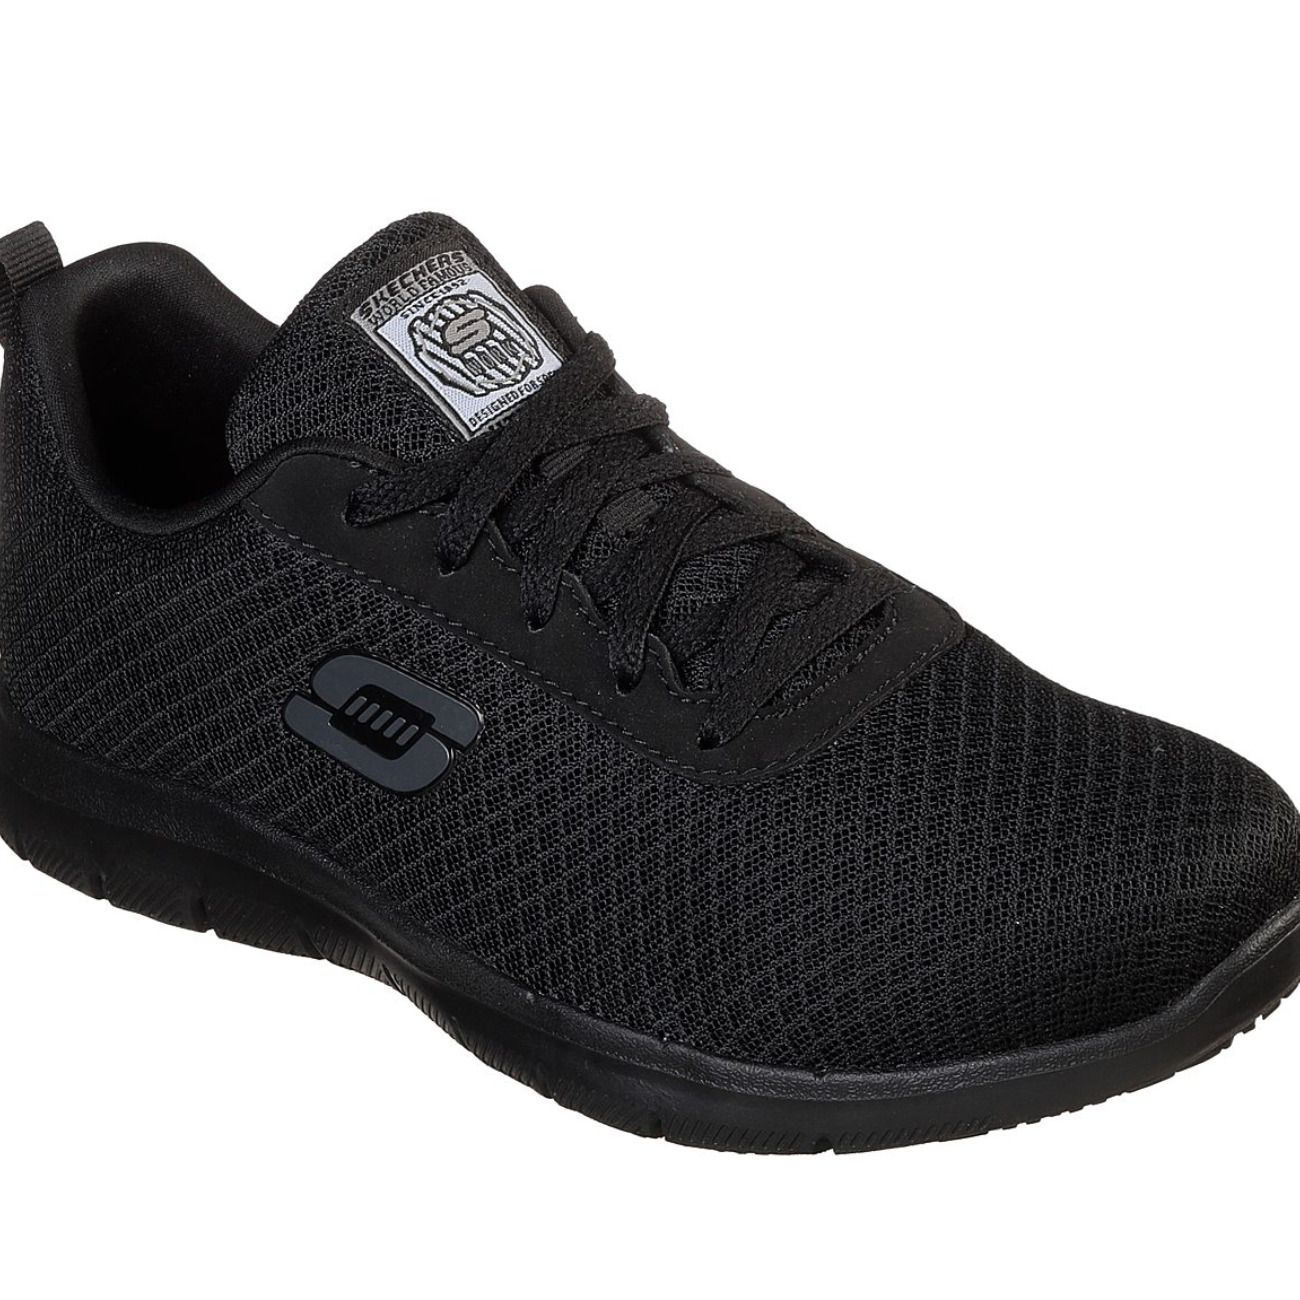 Top 10 Best Slip Resistant Shoes for